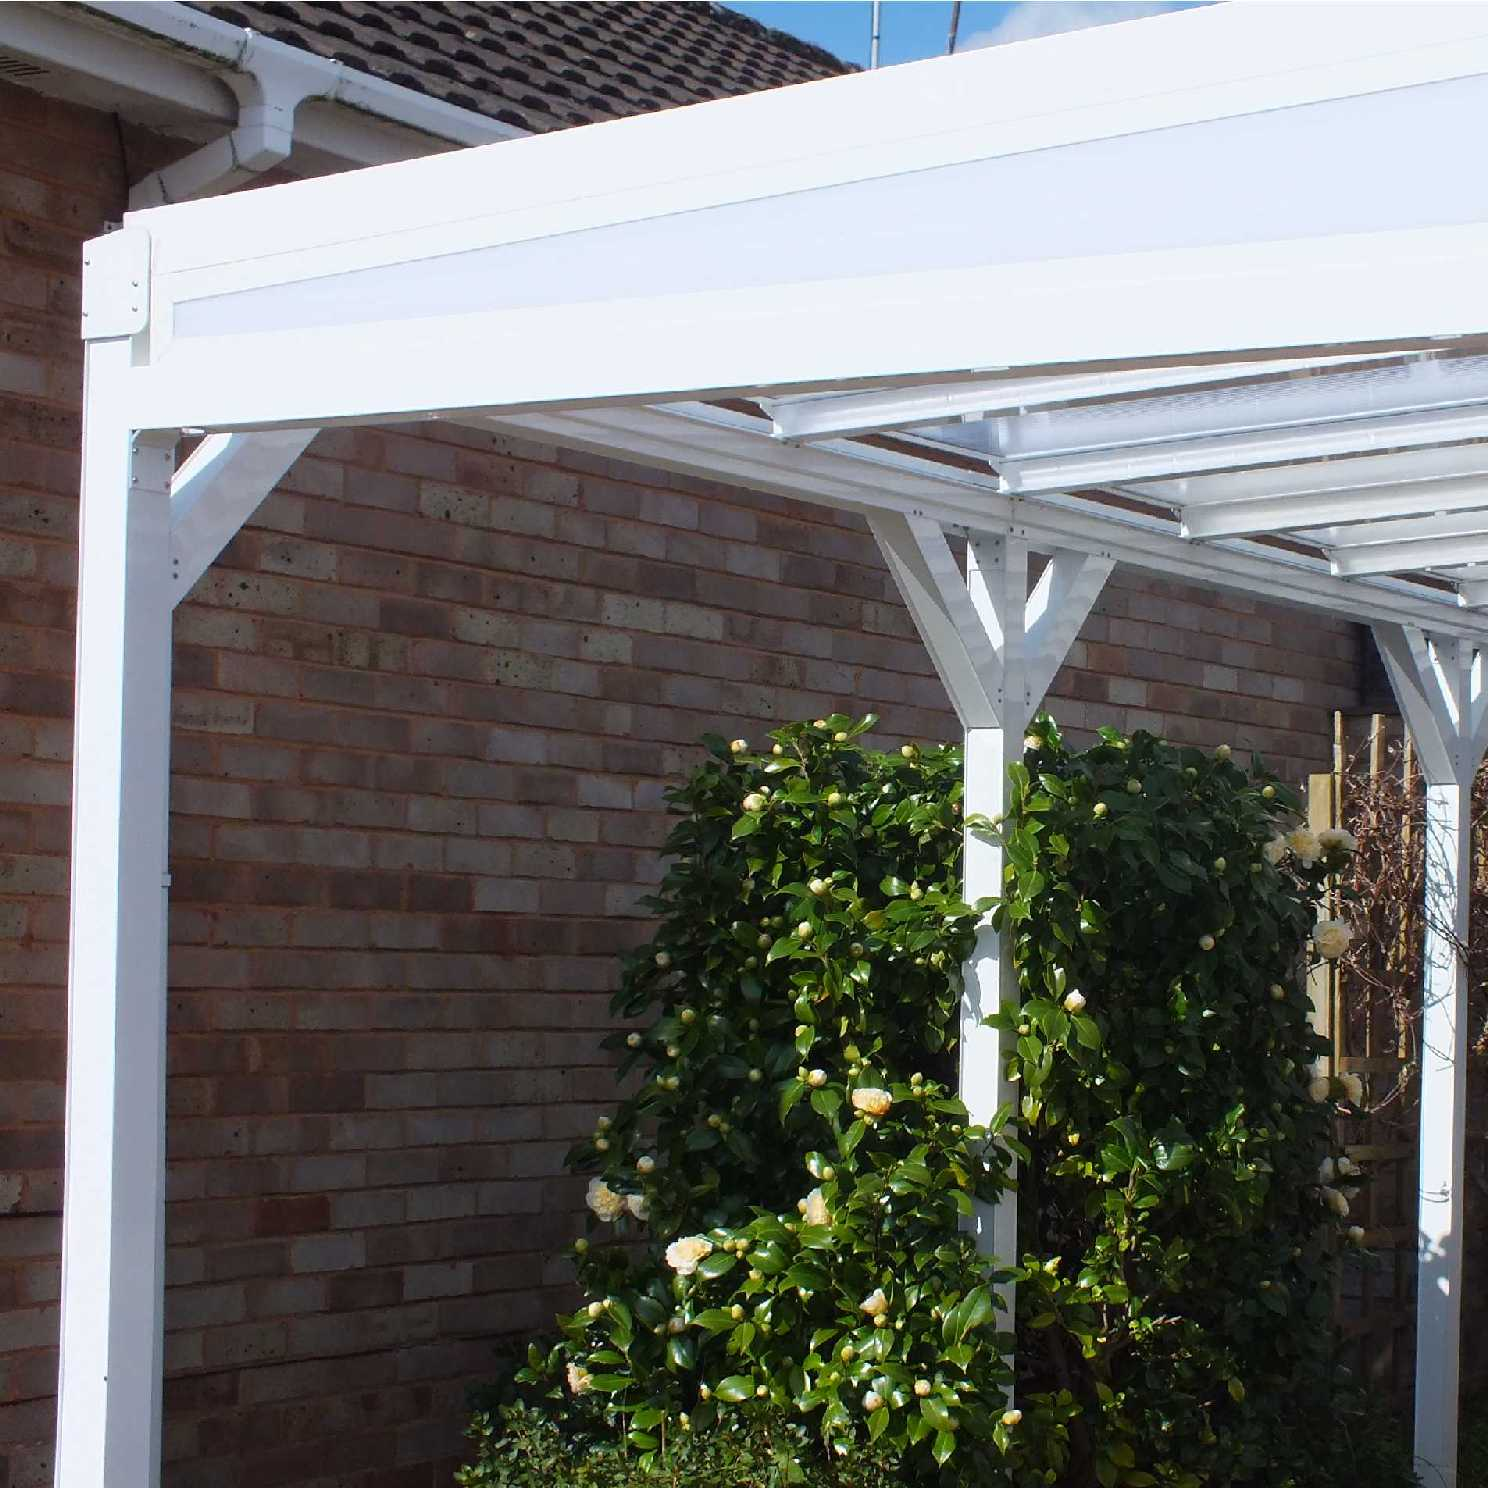 Omega Smart Lean-To Canopy with 16mm Polycarbonate Glazing - 7.8m (W) x 4.0m (P), (4) Supporting Posts from Omega Build